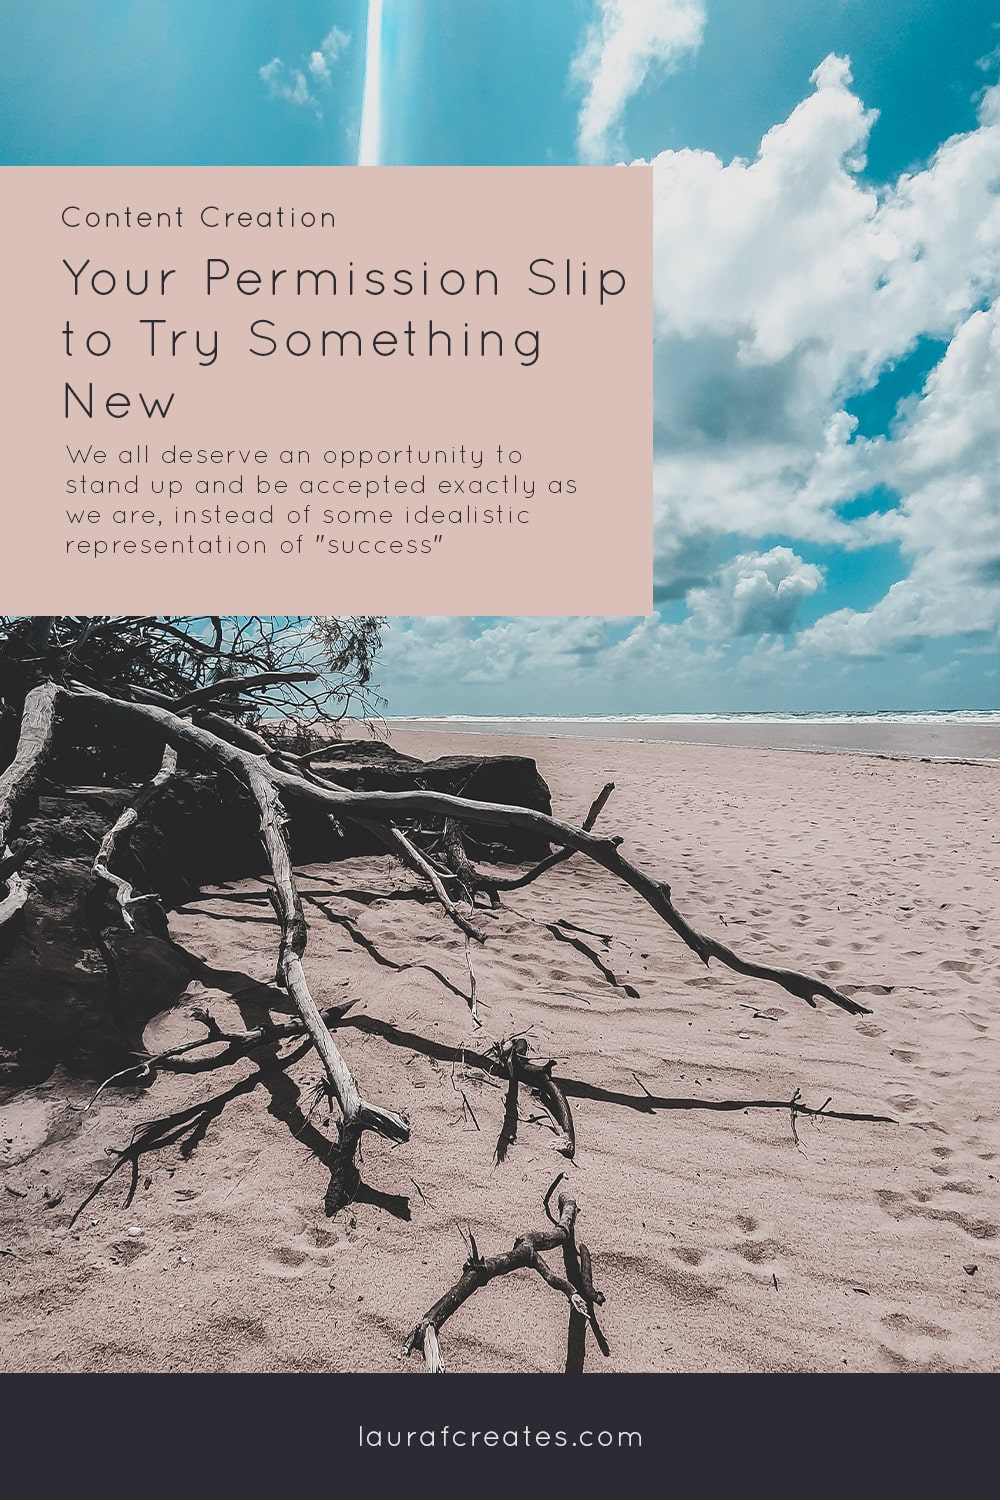 Permission Slip for Content Creation Digital Marketing Tips